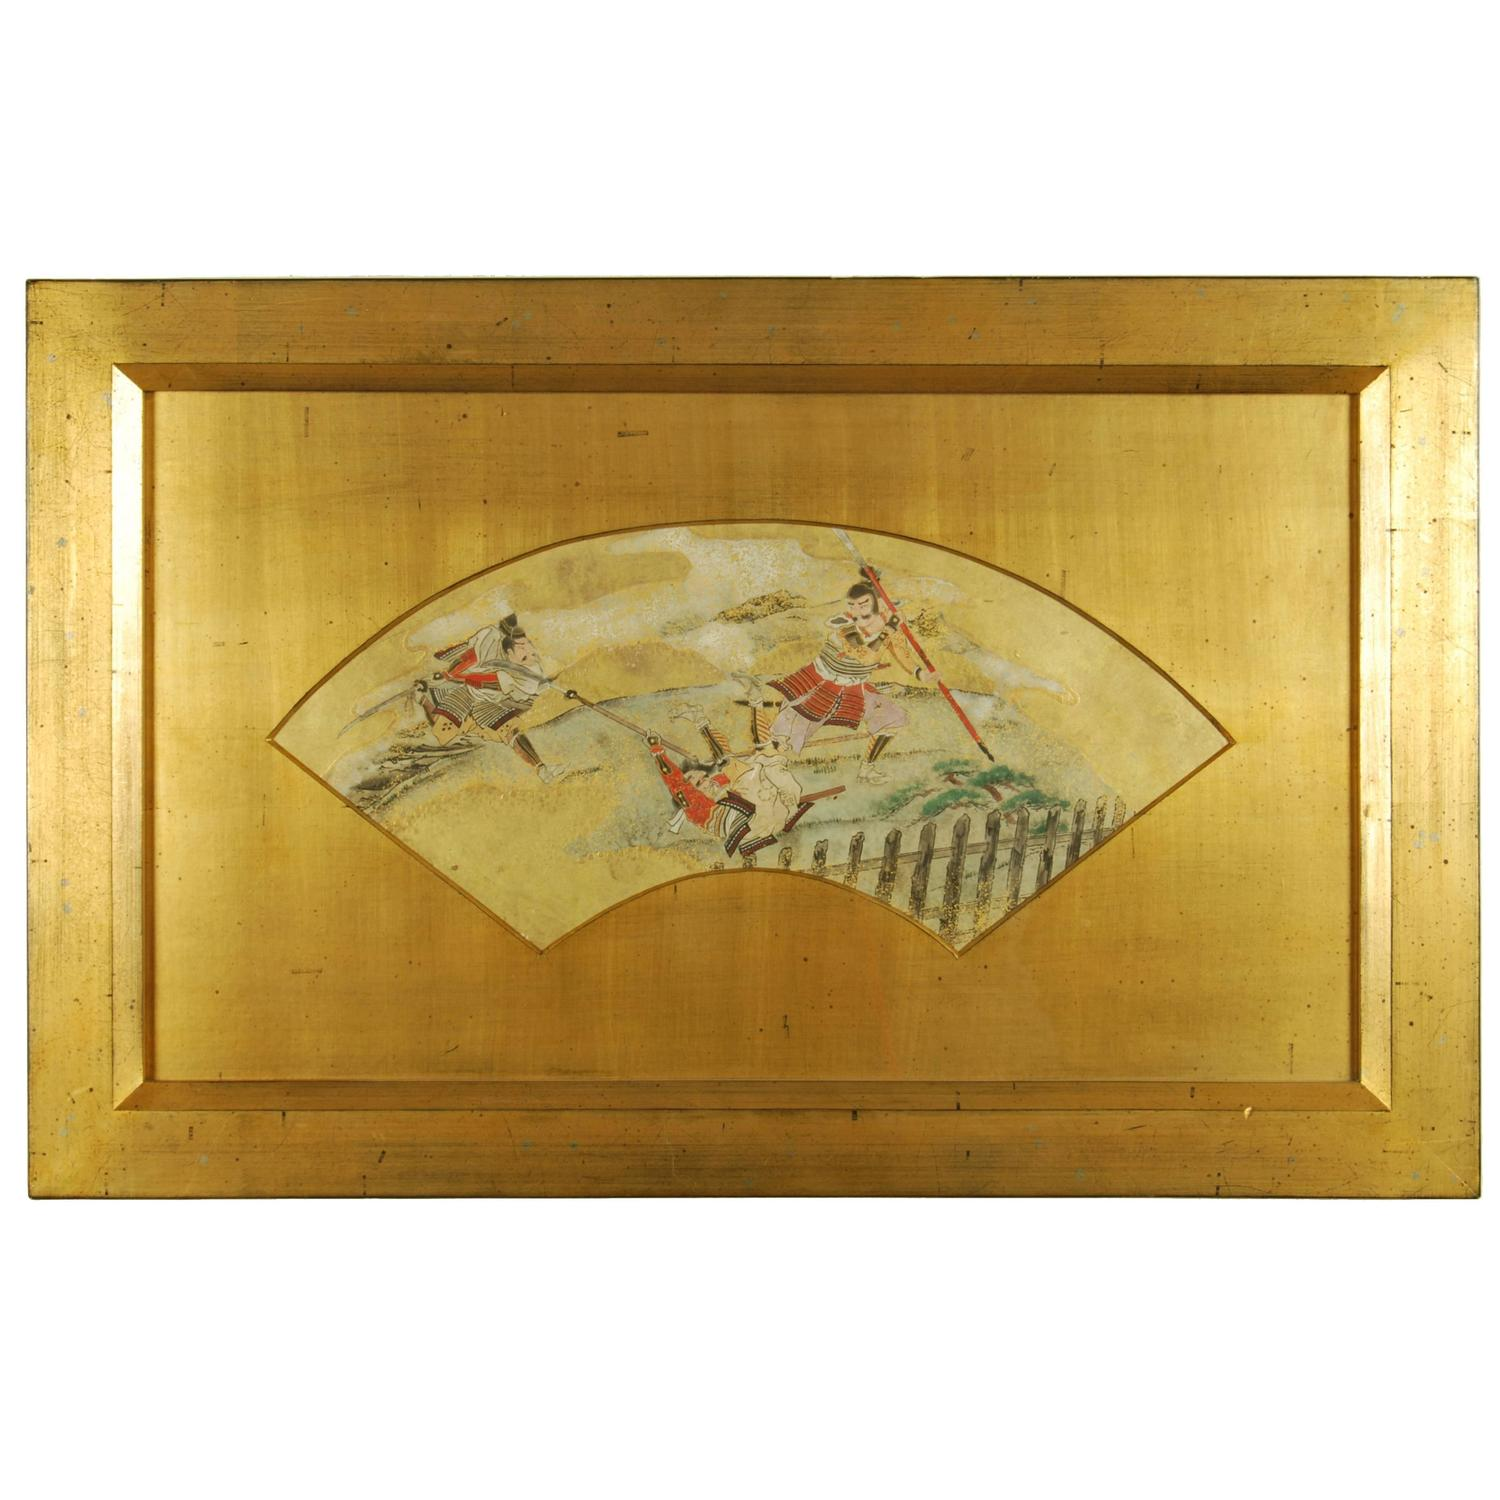 Antique japanese screens for sale - Antique Japanese Fan Painting With Scenes Of A Samurai Battle